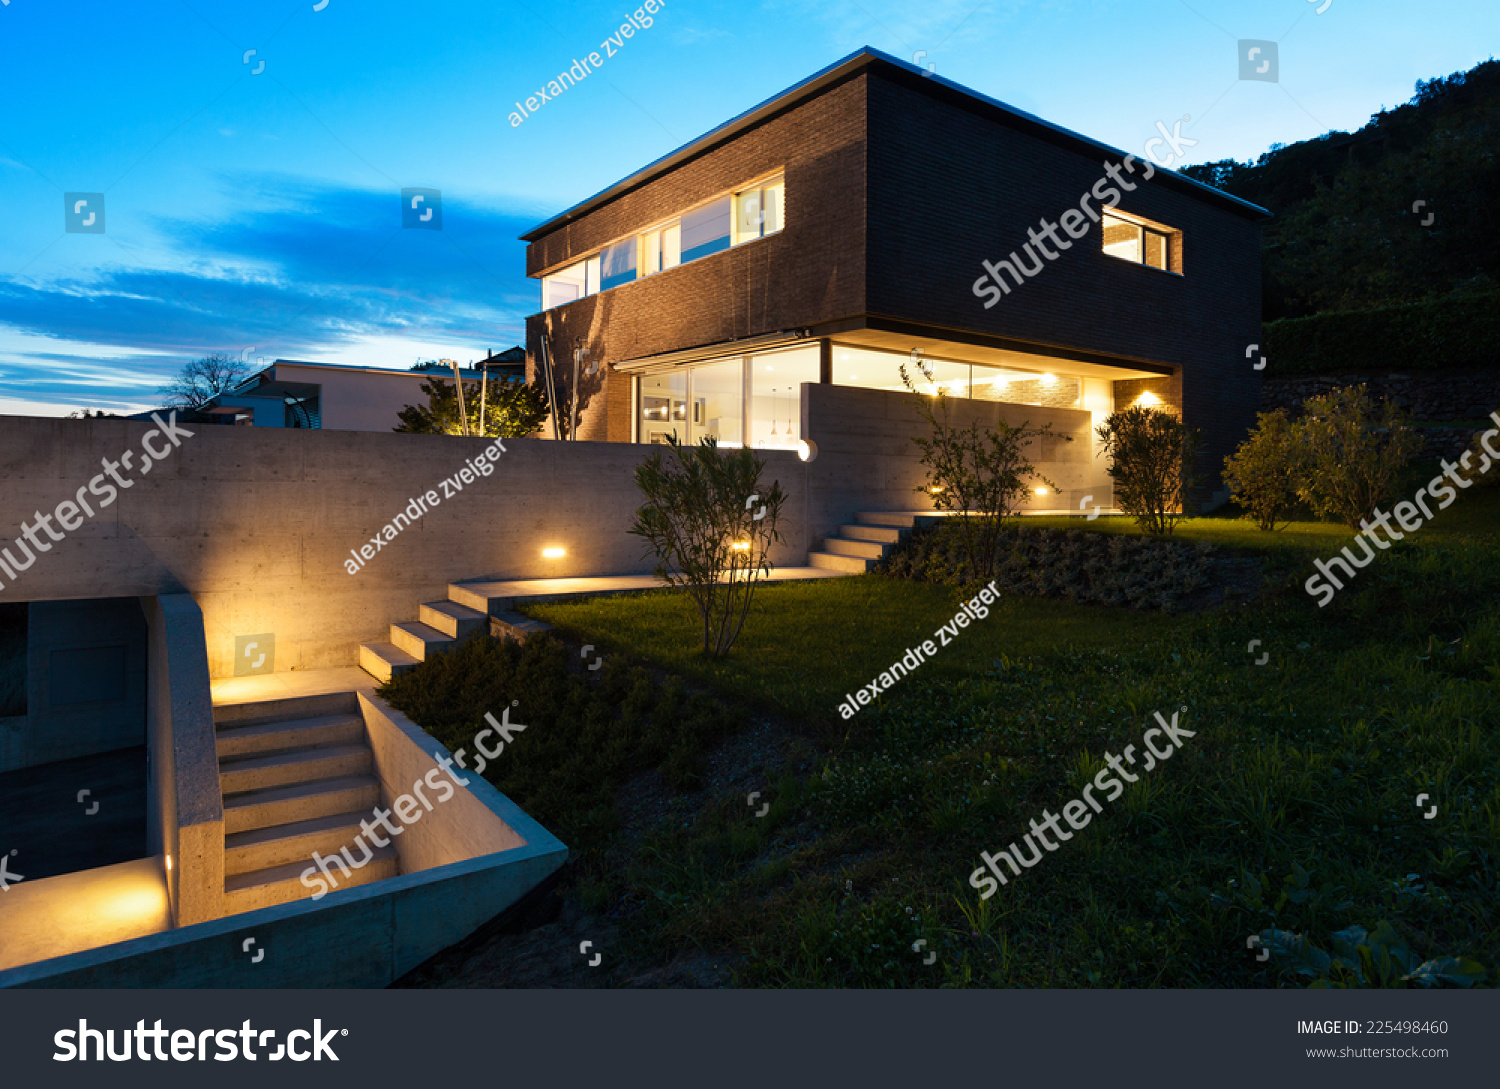 Architecture modern design beautiful house night scene for Modern house at night